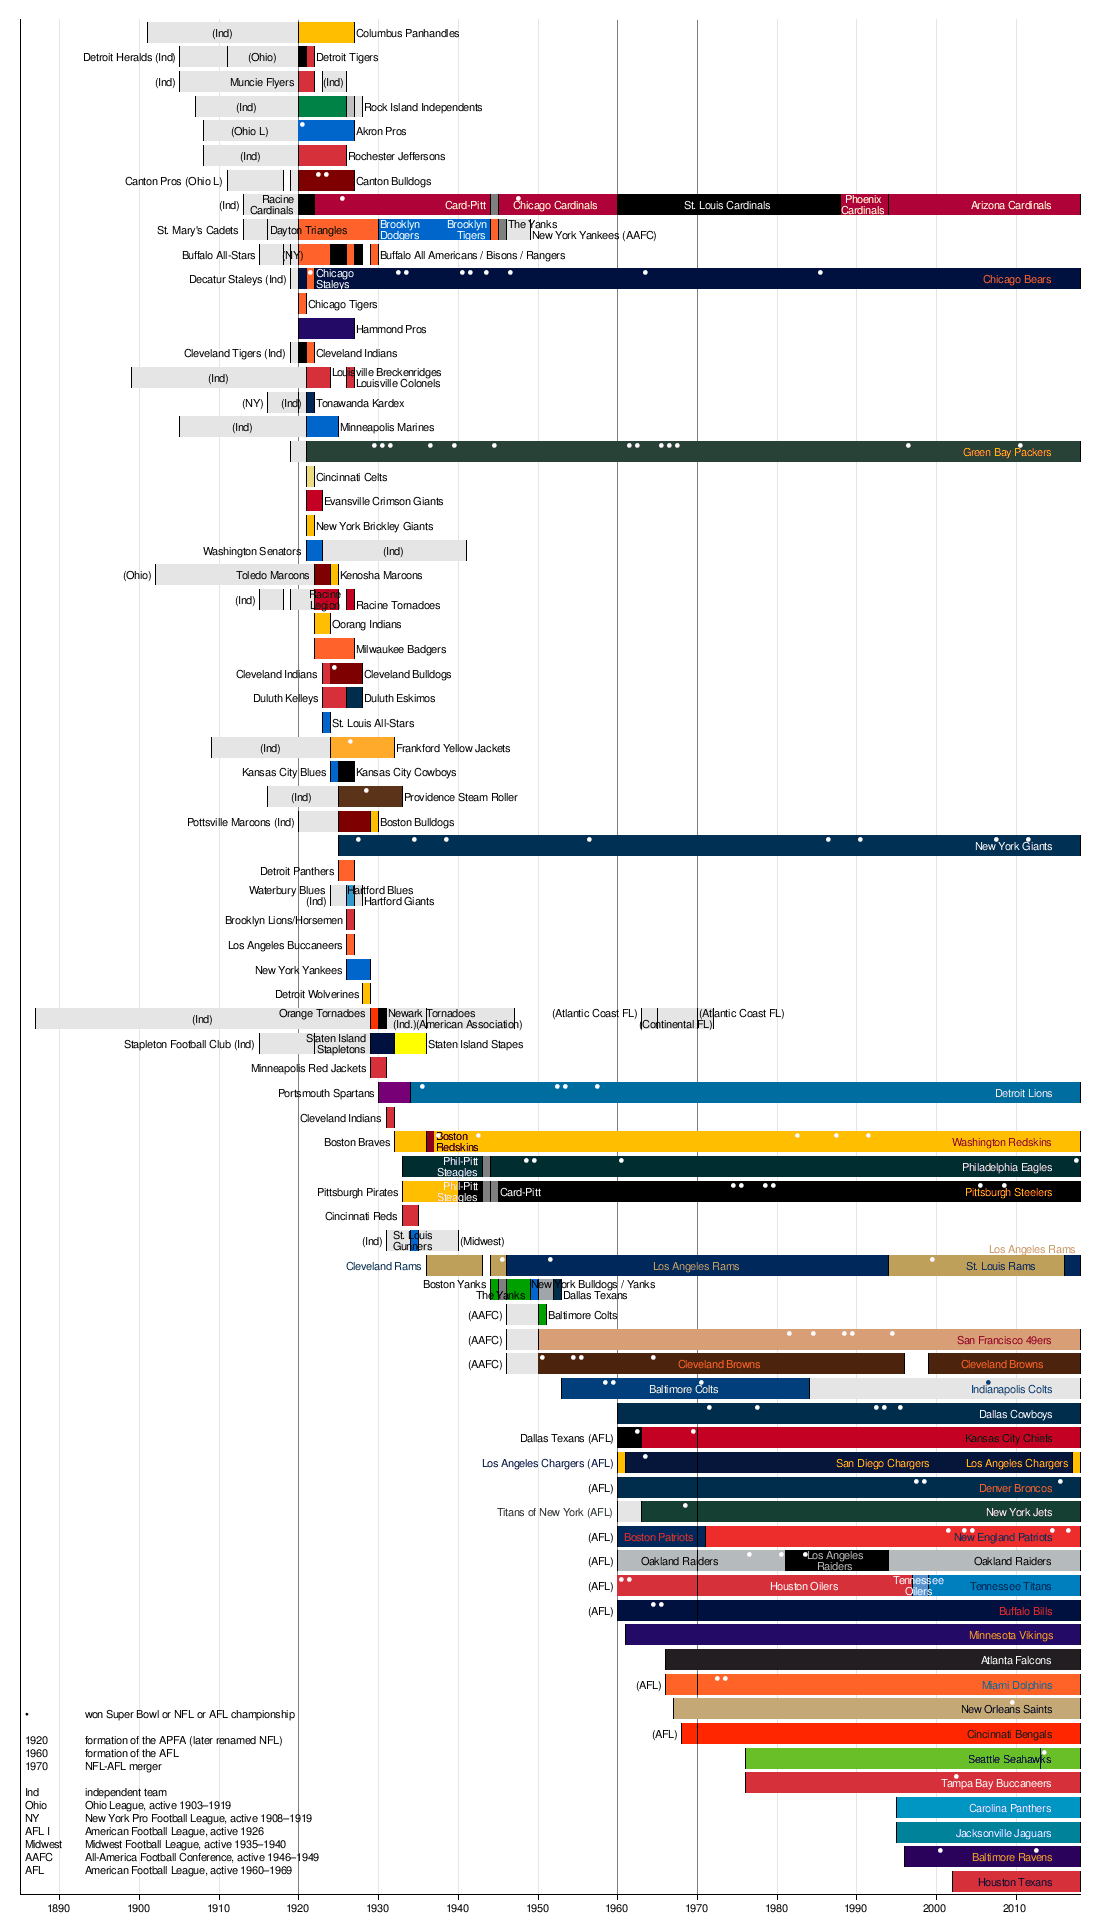 Timeline of the national football league wikipedia